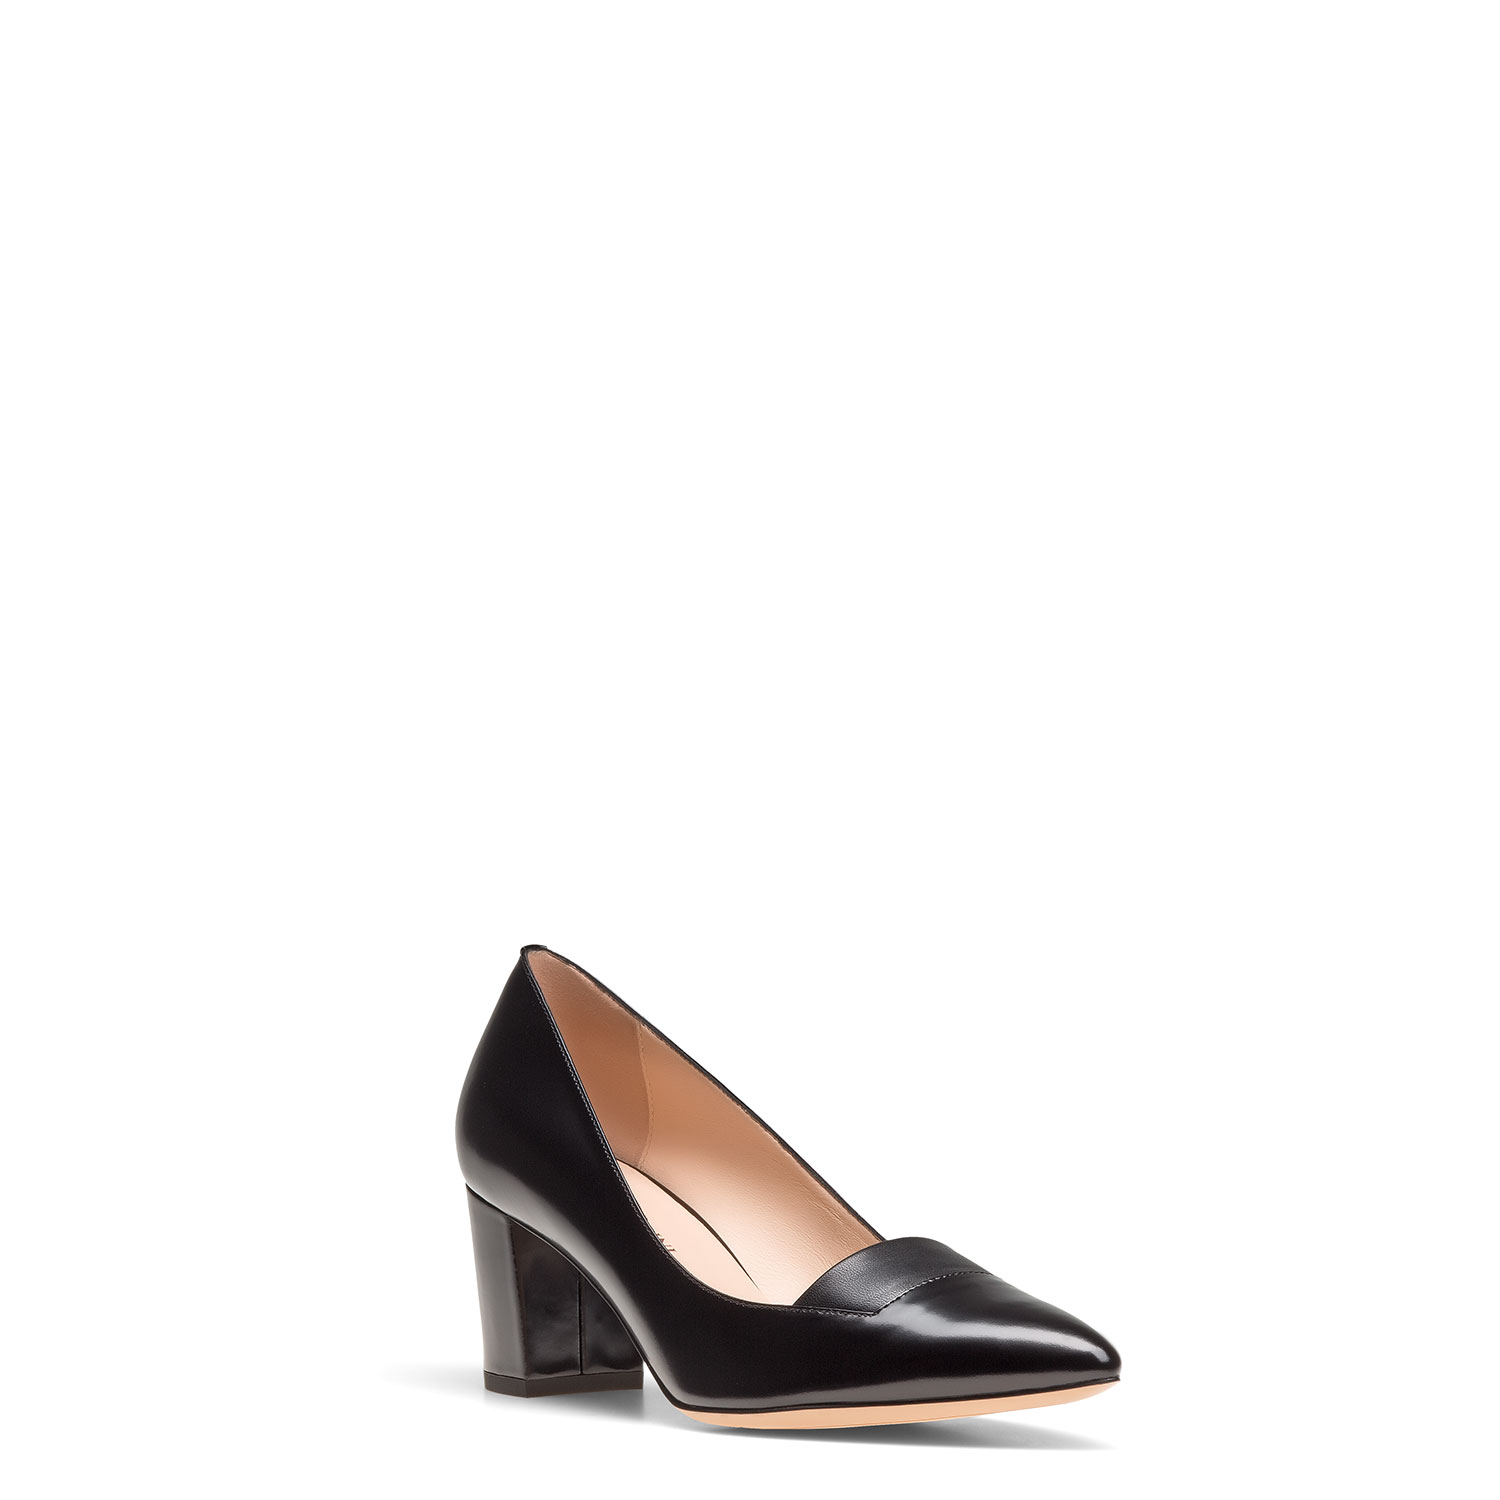 Women's shoes CARLO PAZOLINI FL-GIA13-1P